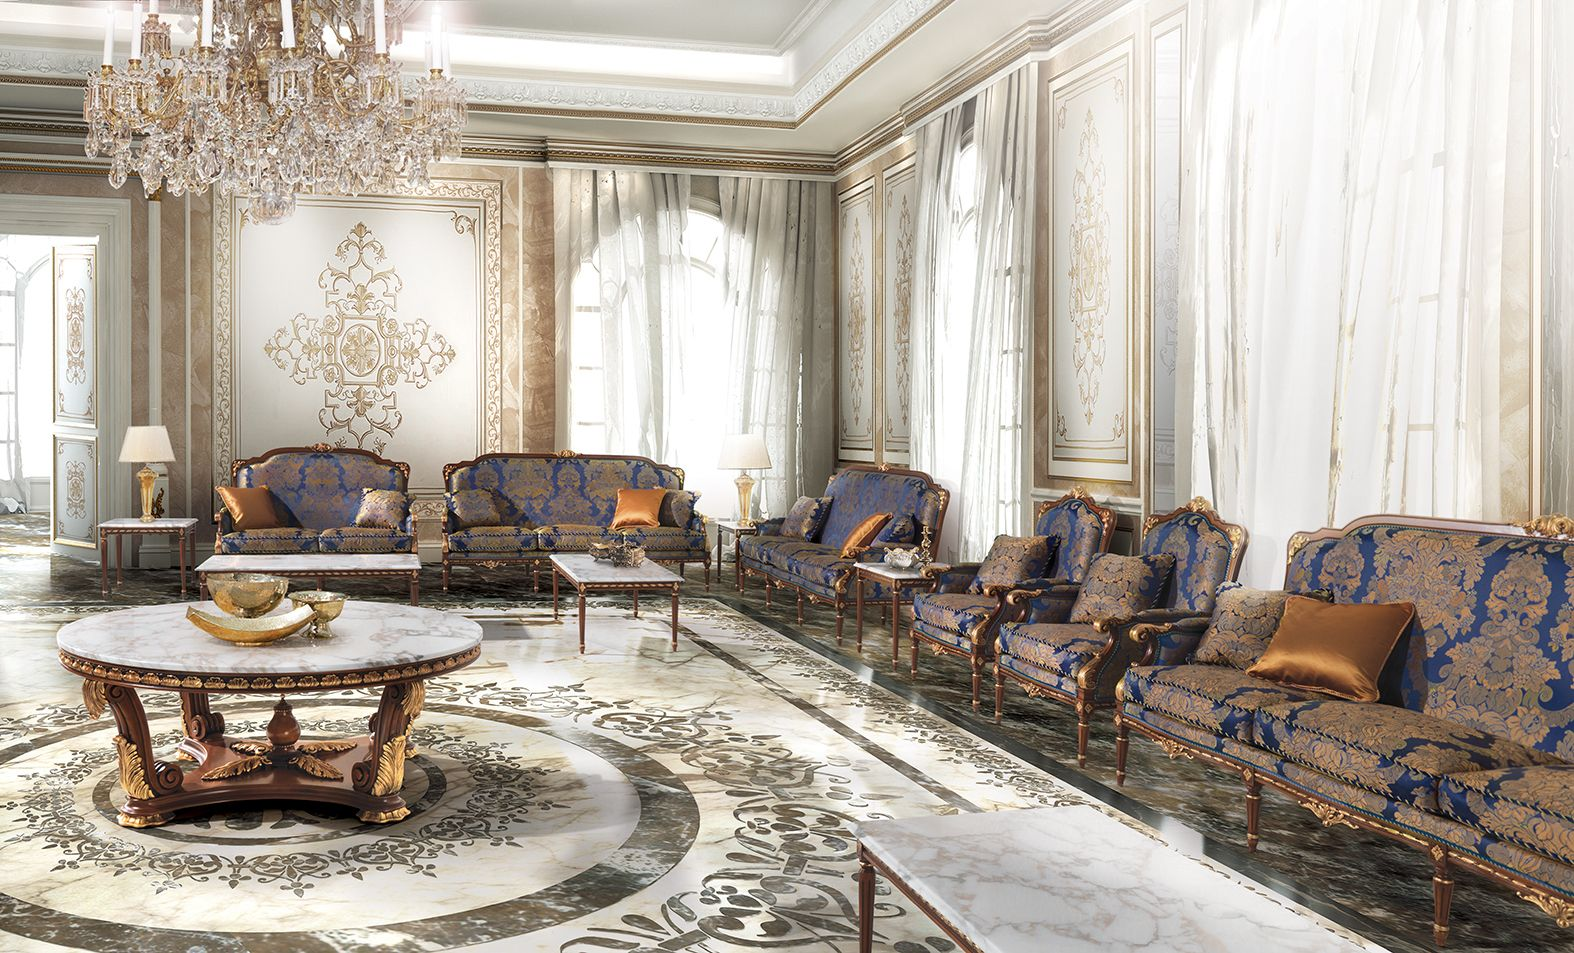 Luxury Italian Furniture For Classic And Elegant Interiors By Angelo Cappellini